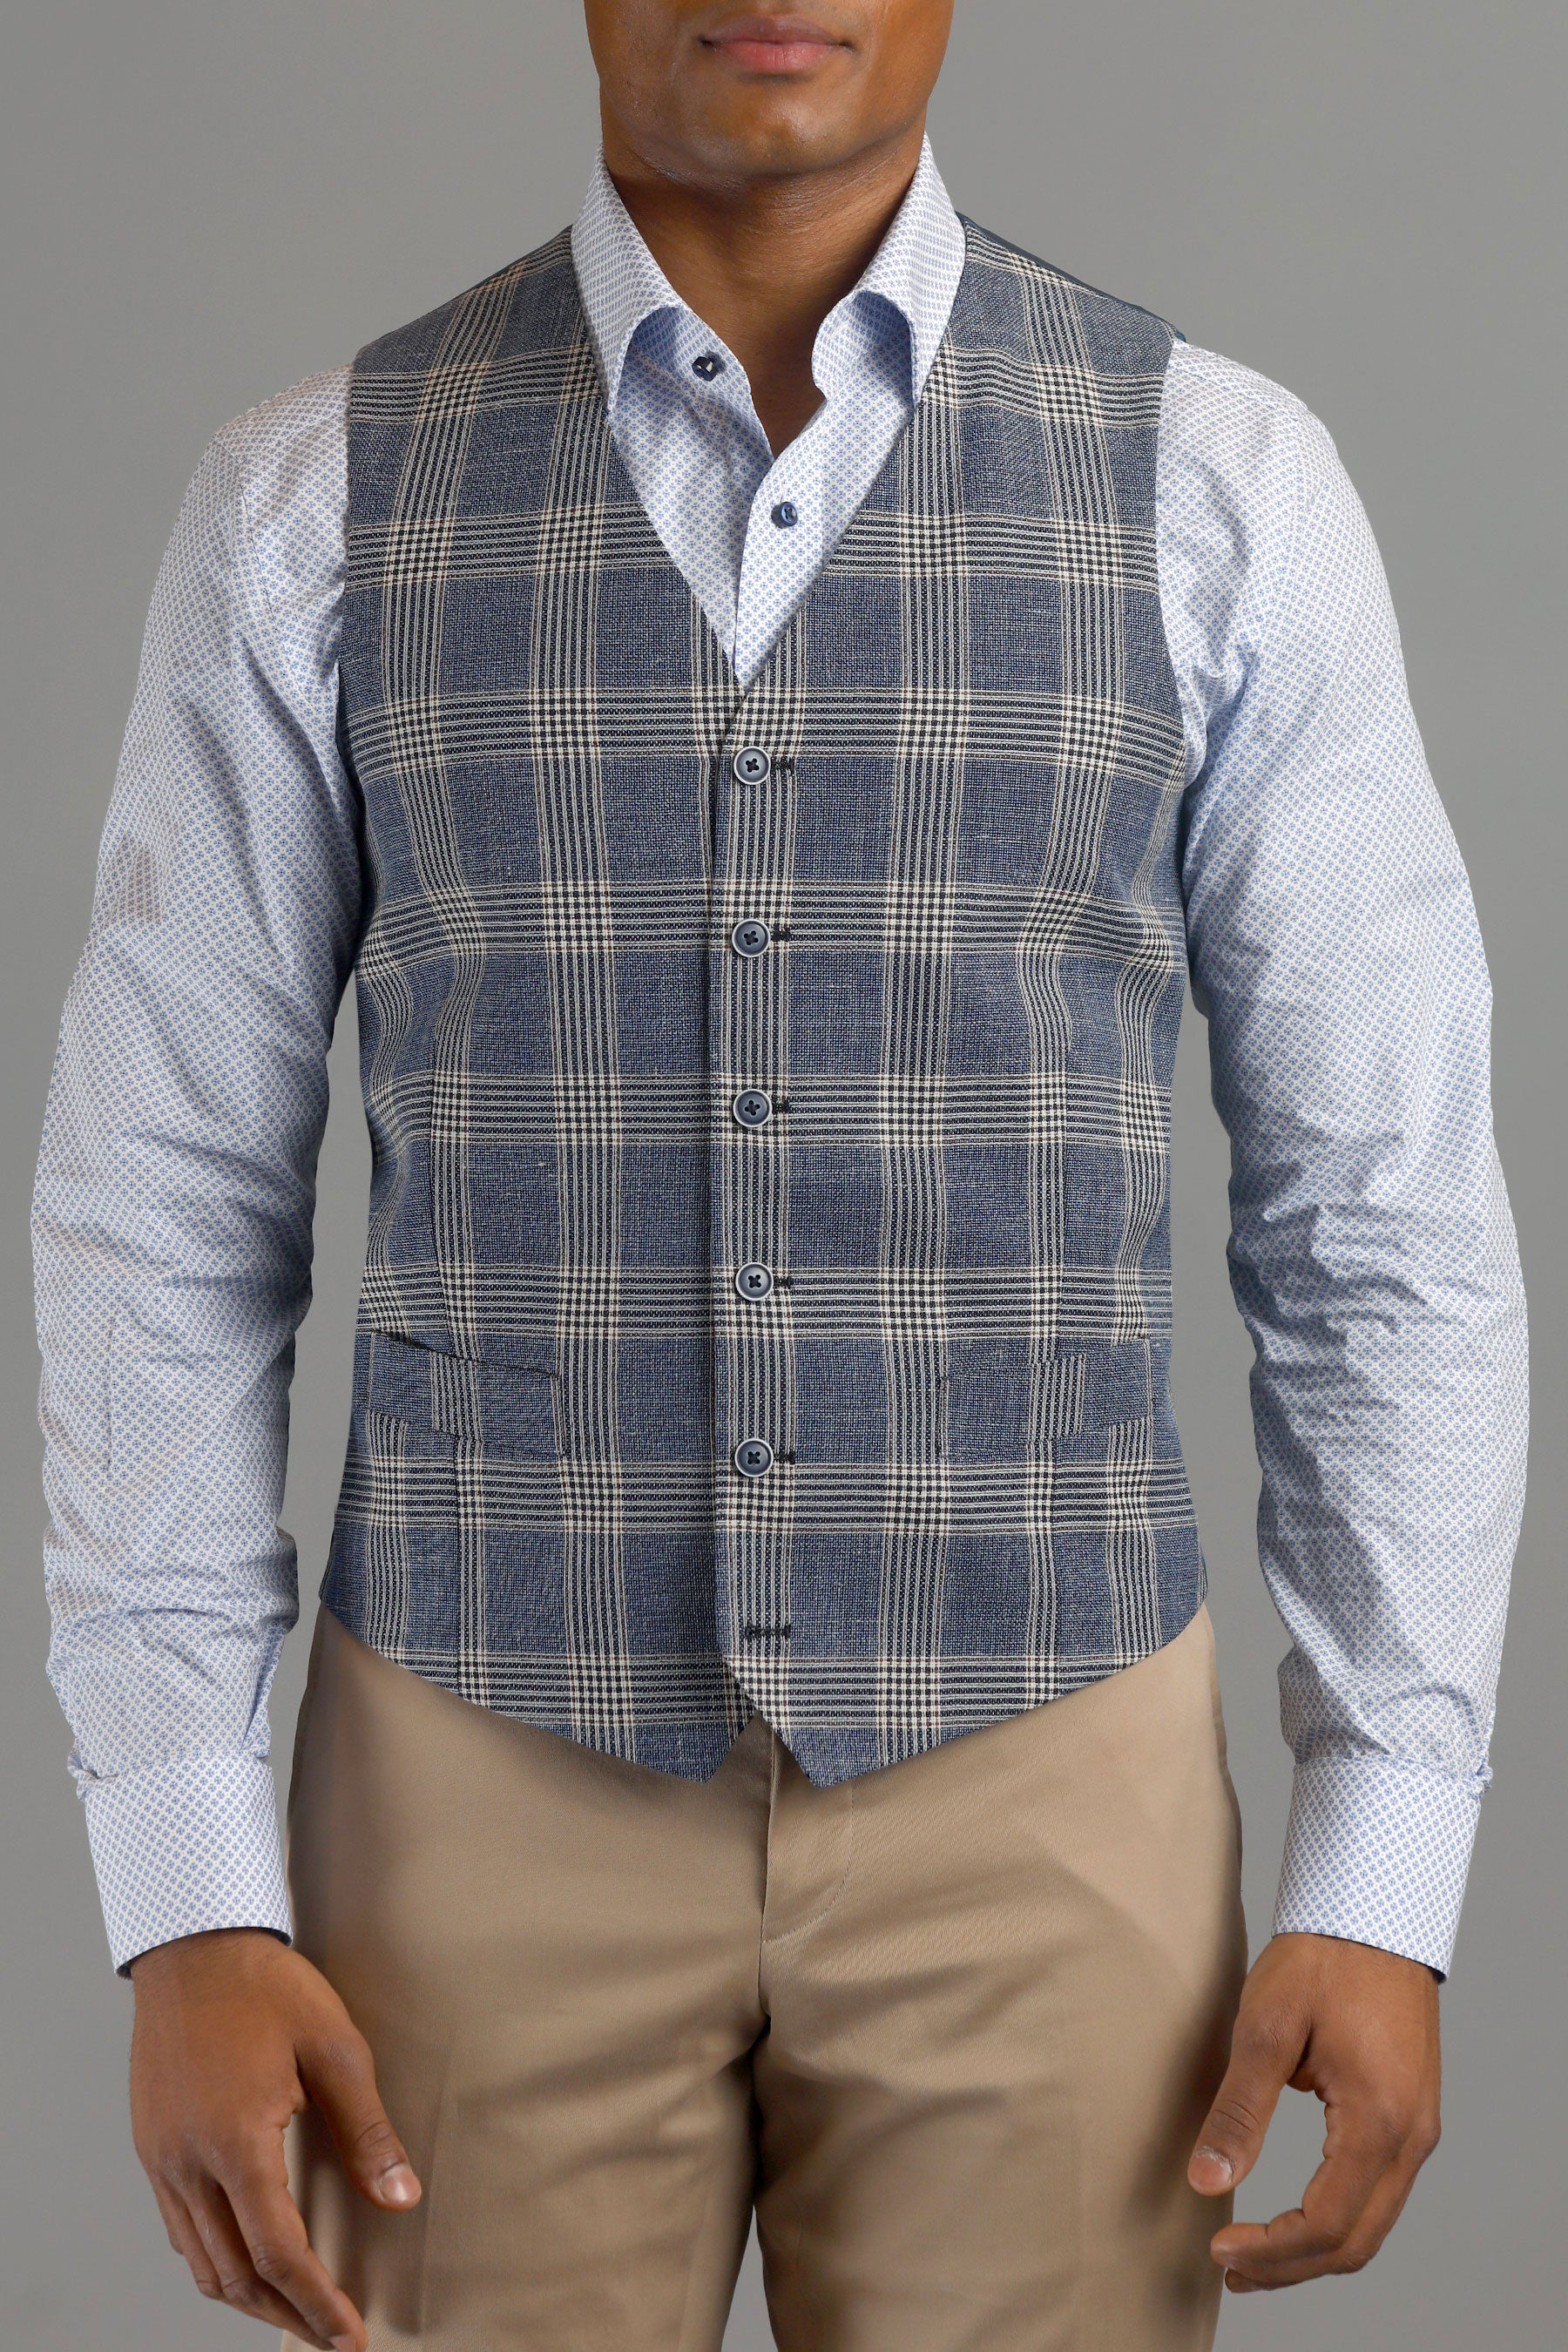 Blue and Tan Six-Button Plaid Wool Vest